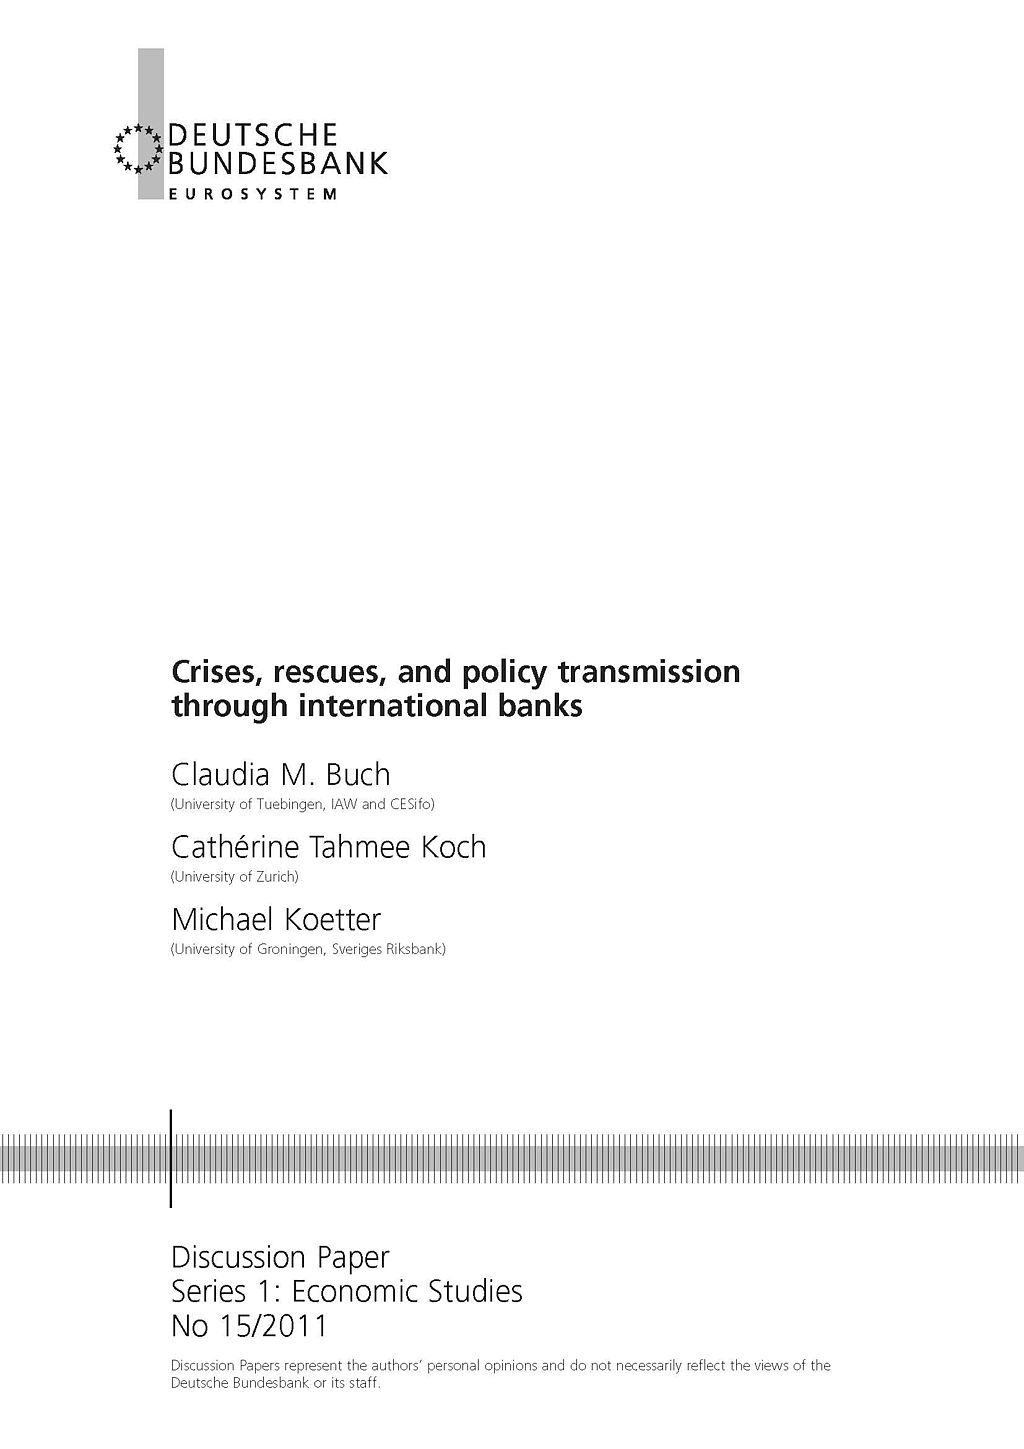 cover_Deutsche-Bundesbank-Discussion-Paper_2011-15.jpg